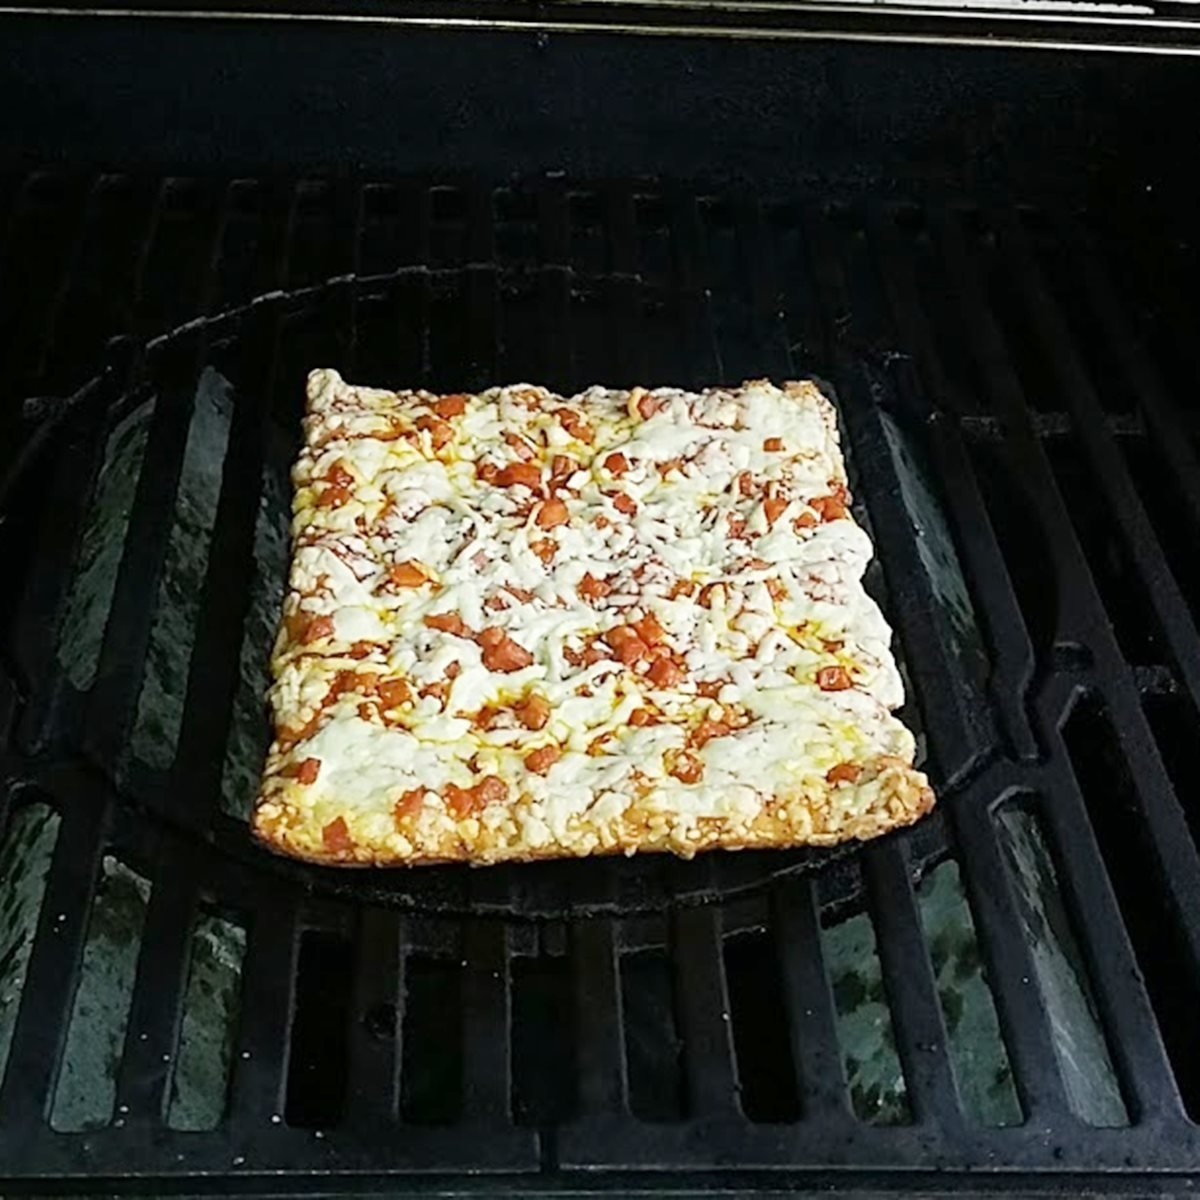 How to grill a Totino's frozen pizza